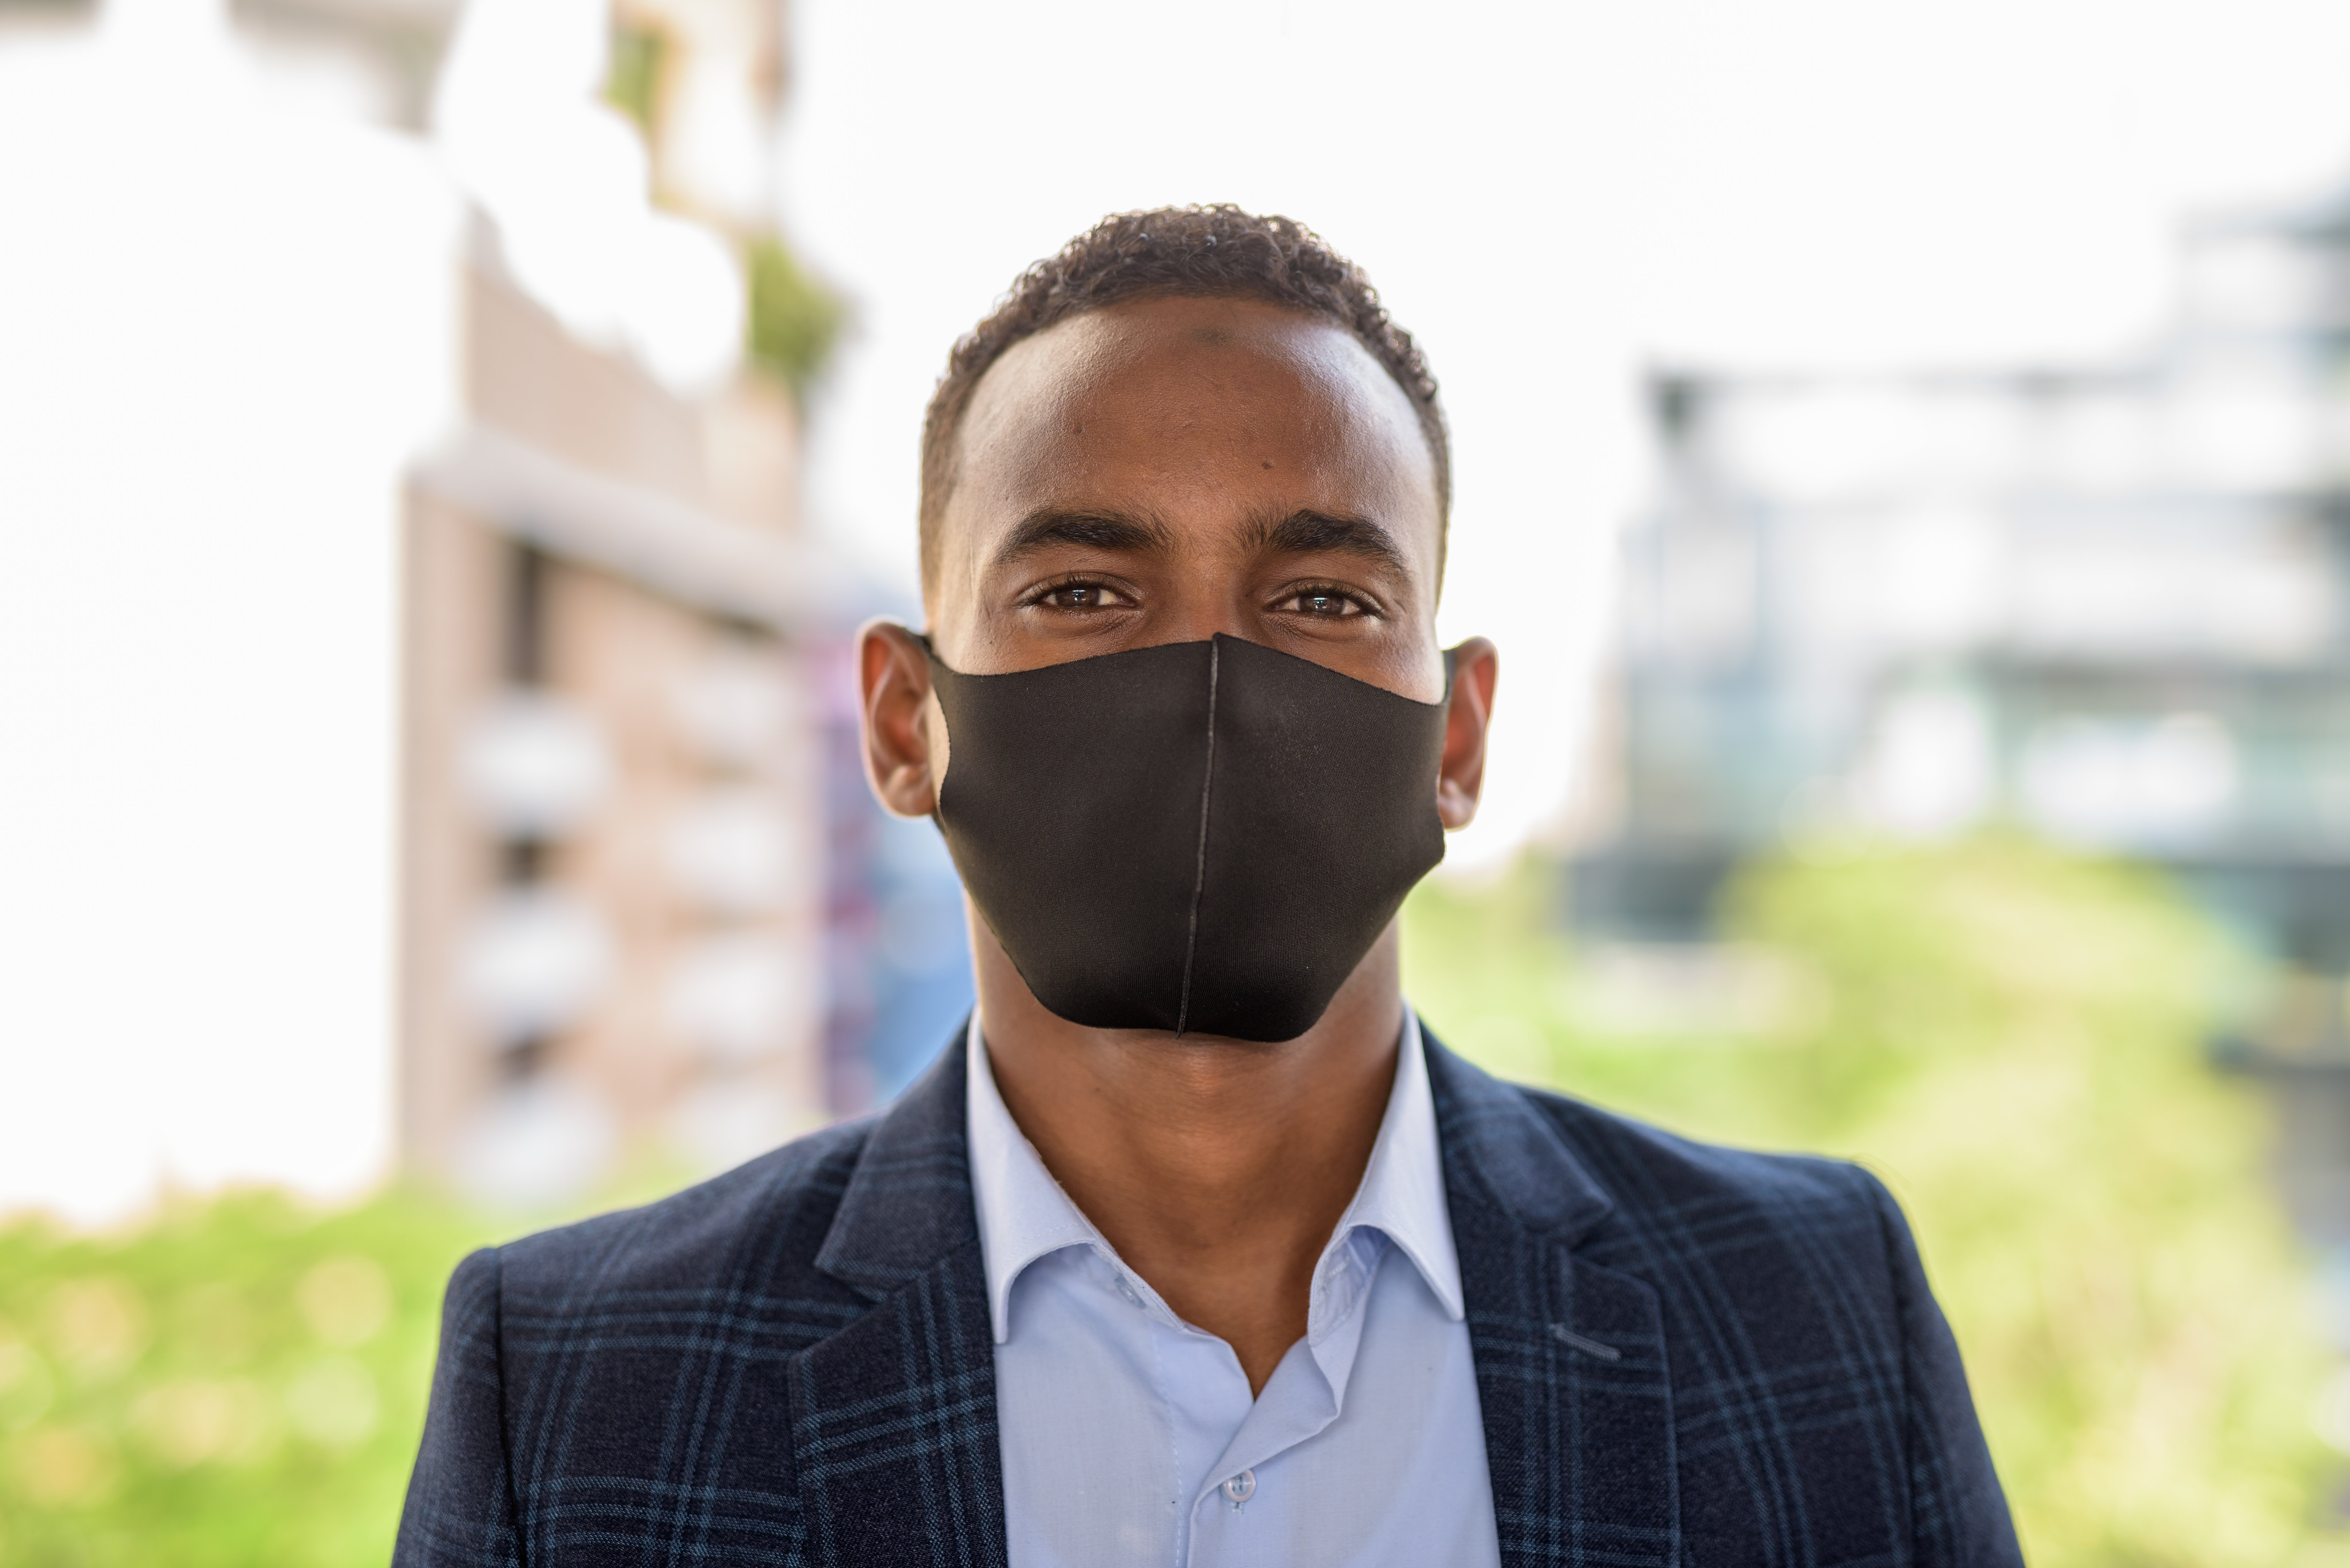 face-of-young-african-businessman-wearing-mask-for-GLA5NSG